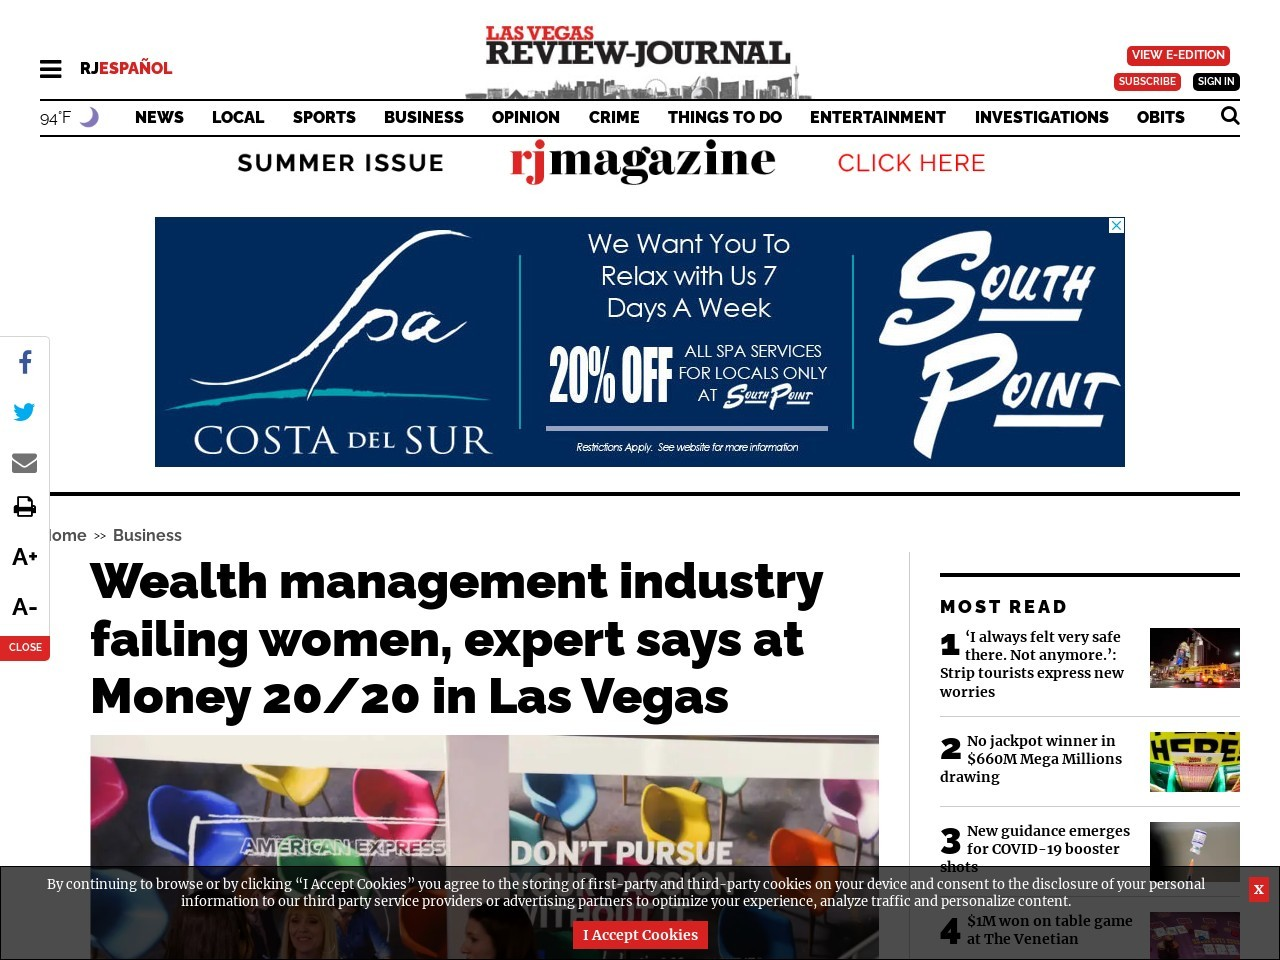 Wealth management industry failing women, expert says at Money 20/20 in Las Vegas